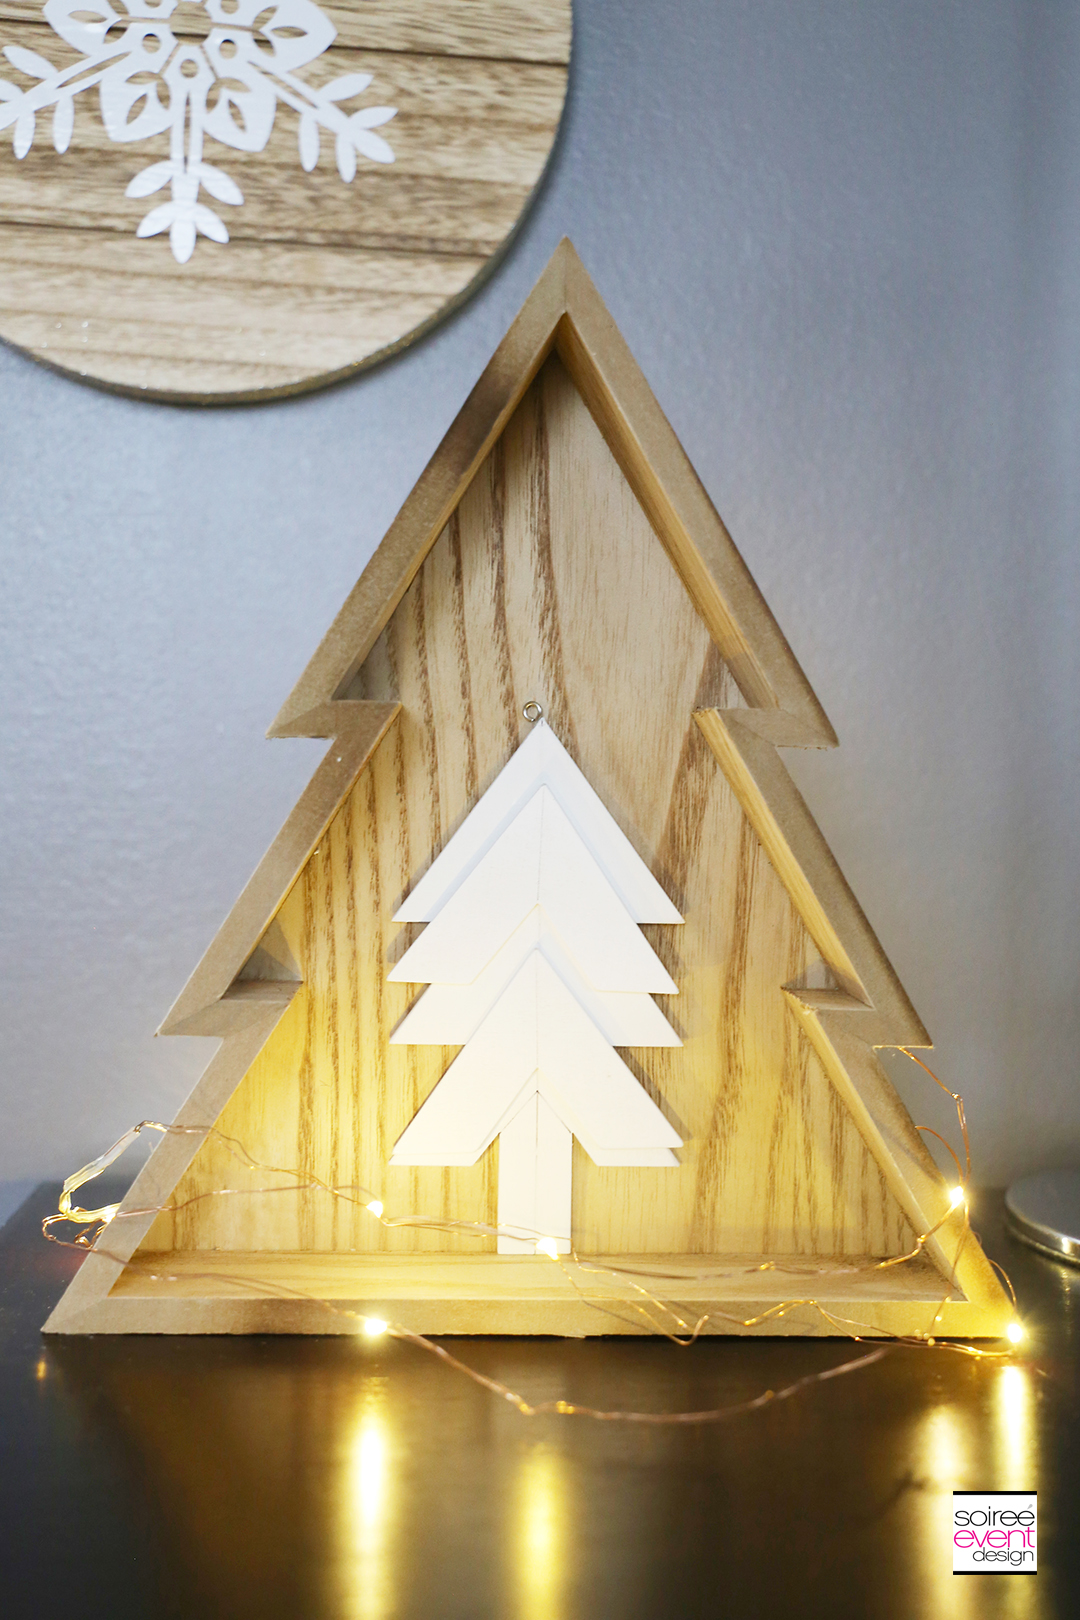 Farmhouse Holiday Decor - Wood Trees